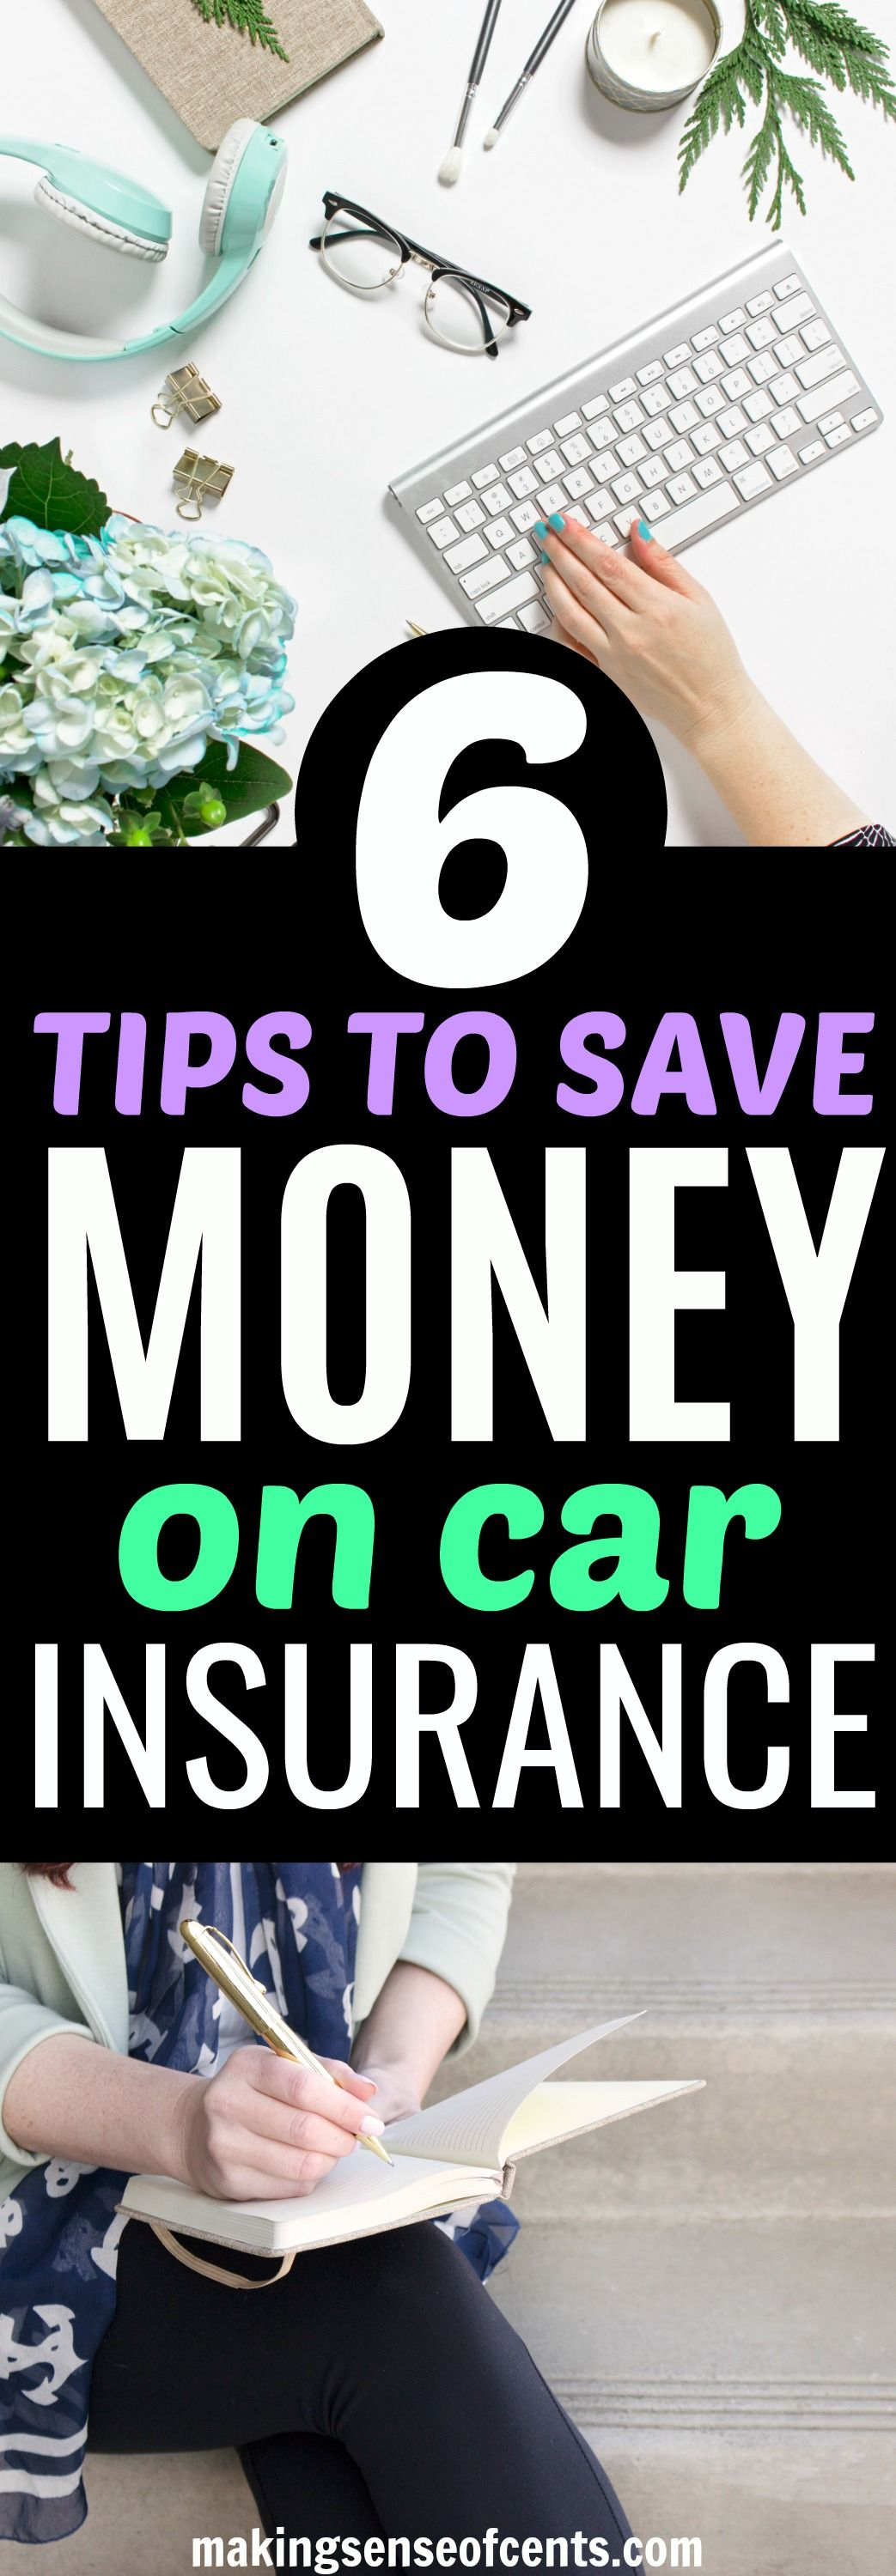 How To Save Money On Insurance - Do These 5 Things ...